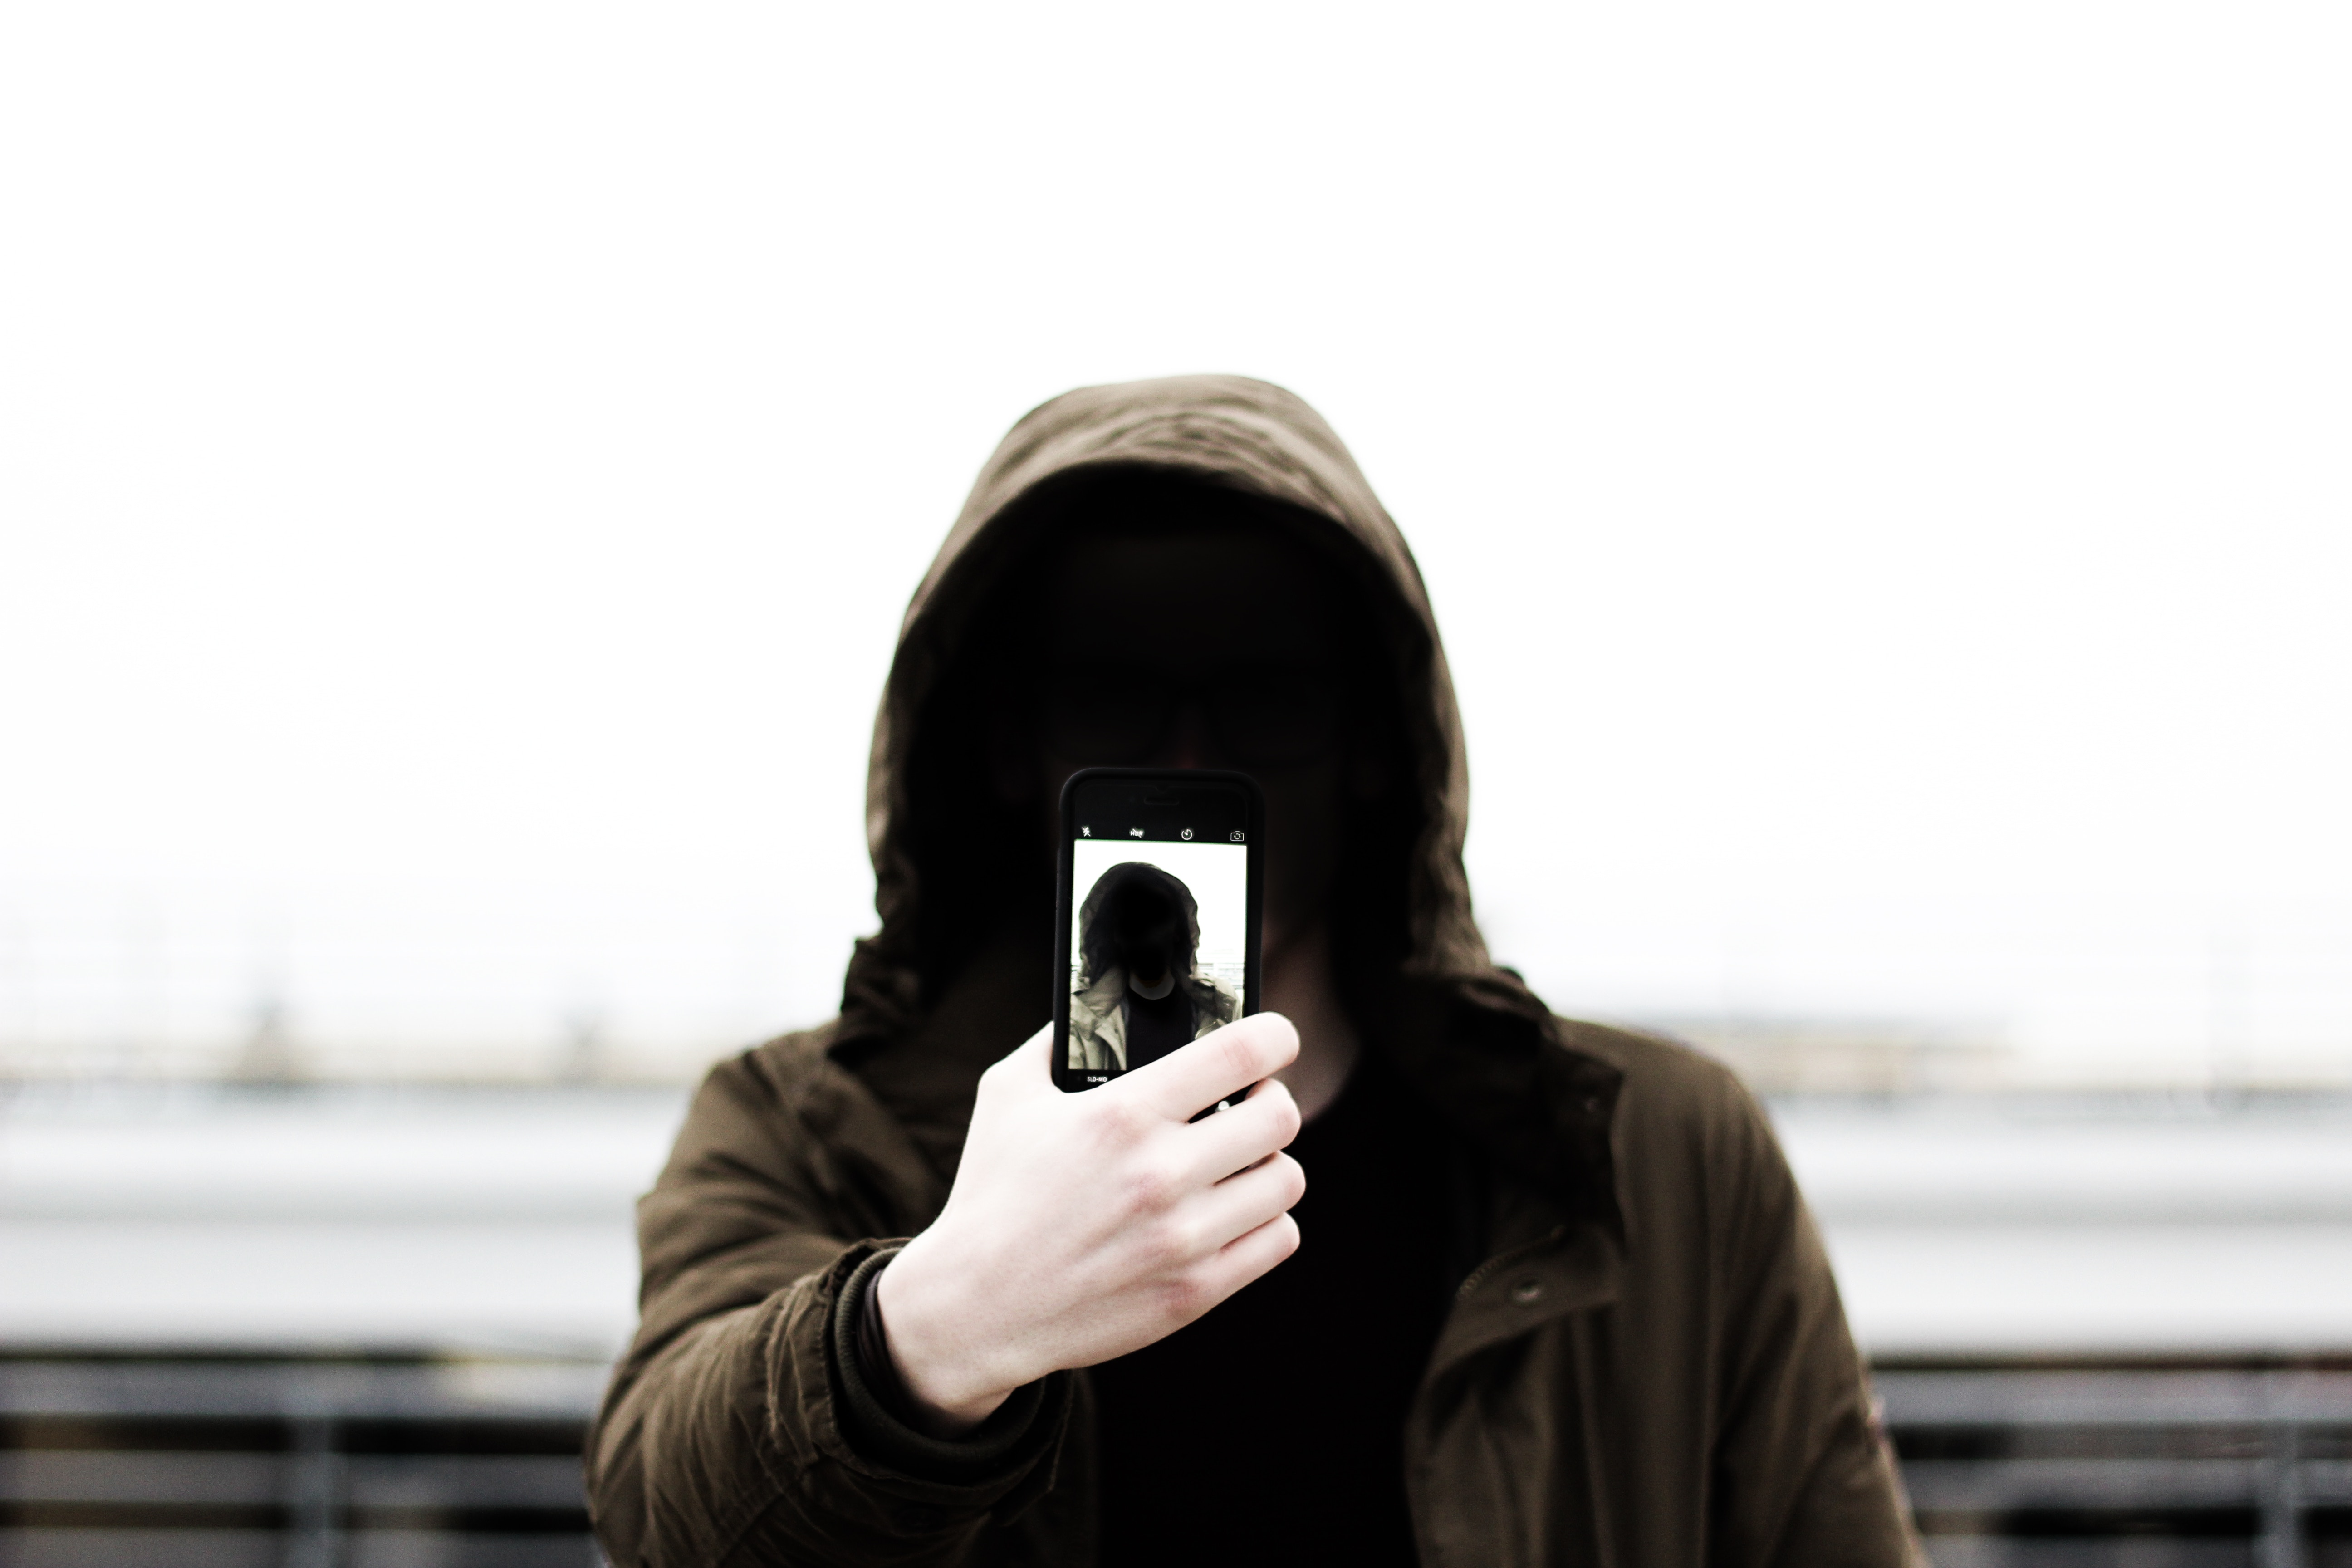 73151 Screensavers and Wallpapers Photo for phone. Download Miscellanea, Miscellaneous, Hood, Anonymous, Hand, Photo, Photography, Selfie, Selfies pictures for free